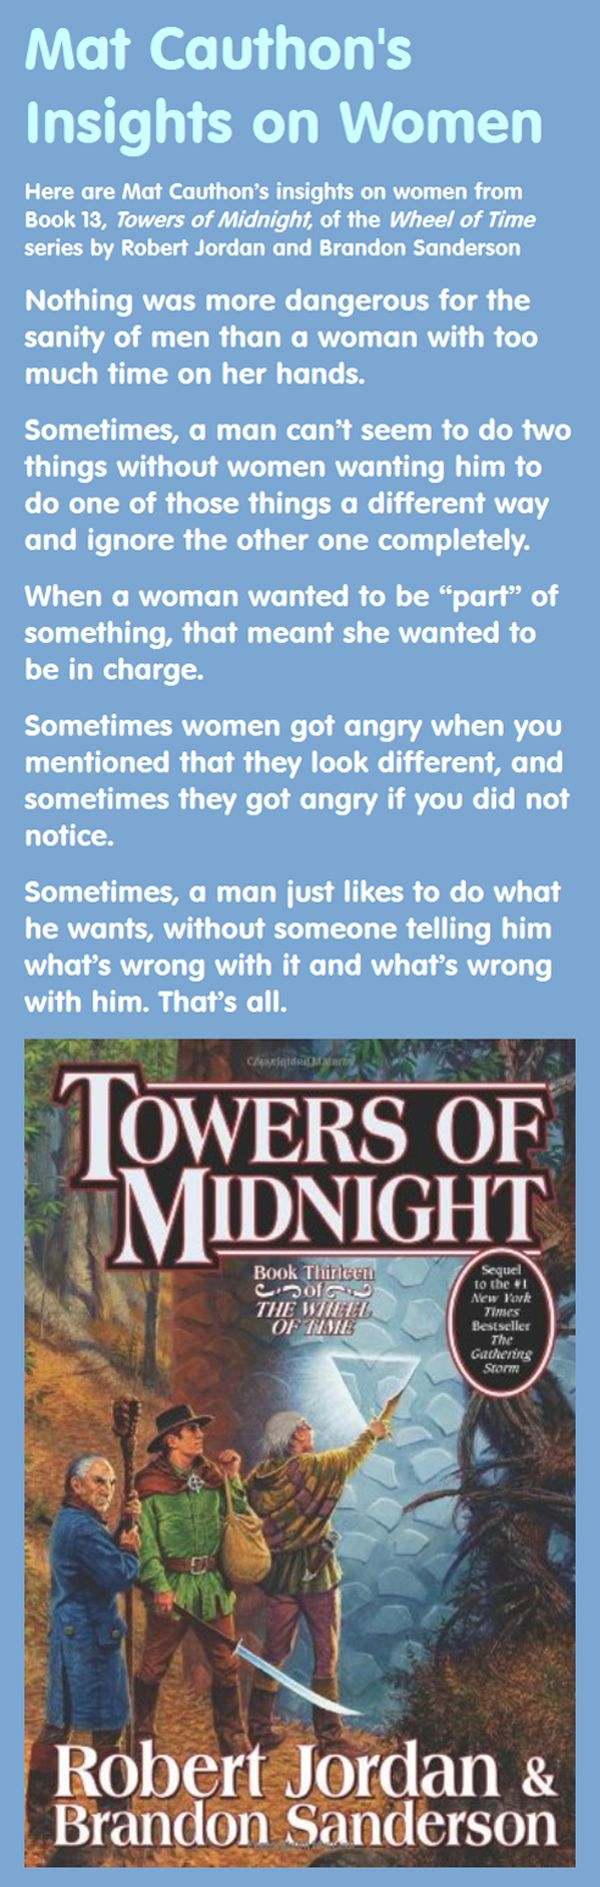 I've always loved the wonderful insights on women uttered by Mat Cauthon, a character from Robert Jordan's Wheel of Time series. Here are Mat's insights on women from Book 13, Towers of Midnight, of the Wheel of Time series (by Robert Jordan and Brandon Sanderson): Nothing was more dangerous for the sanity of men than a woman with too much time on her hands.... #women #men #robertjordan